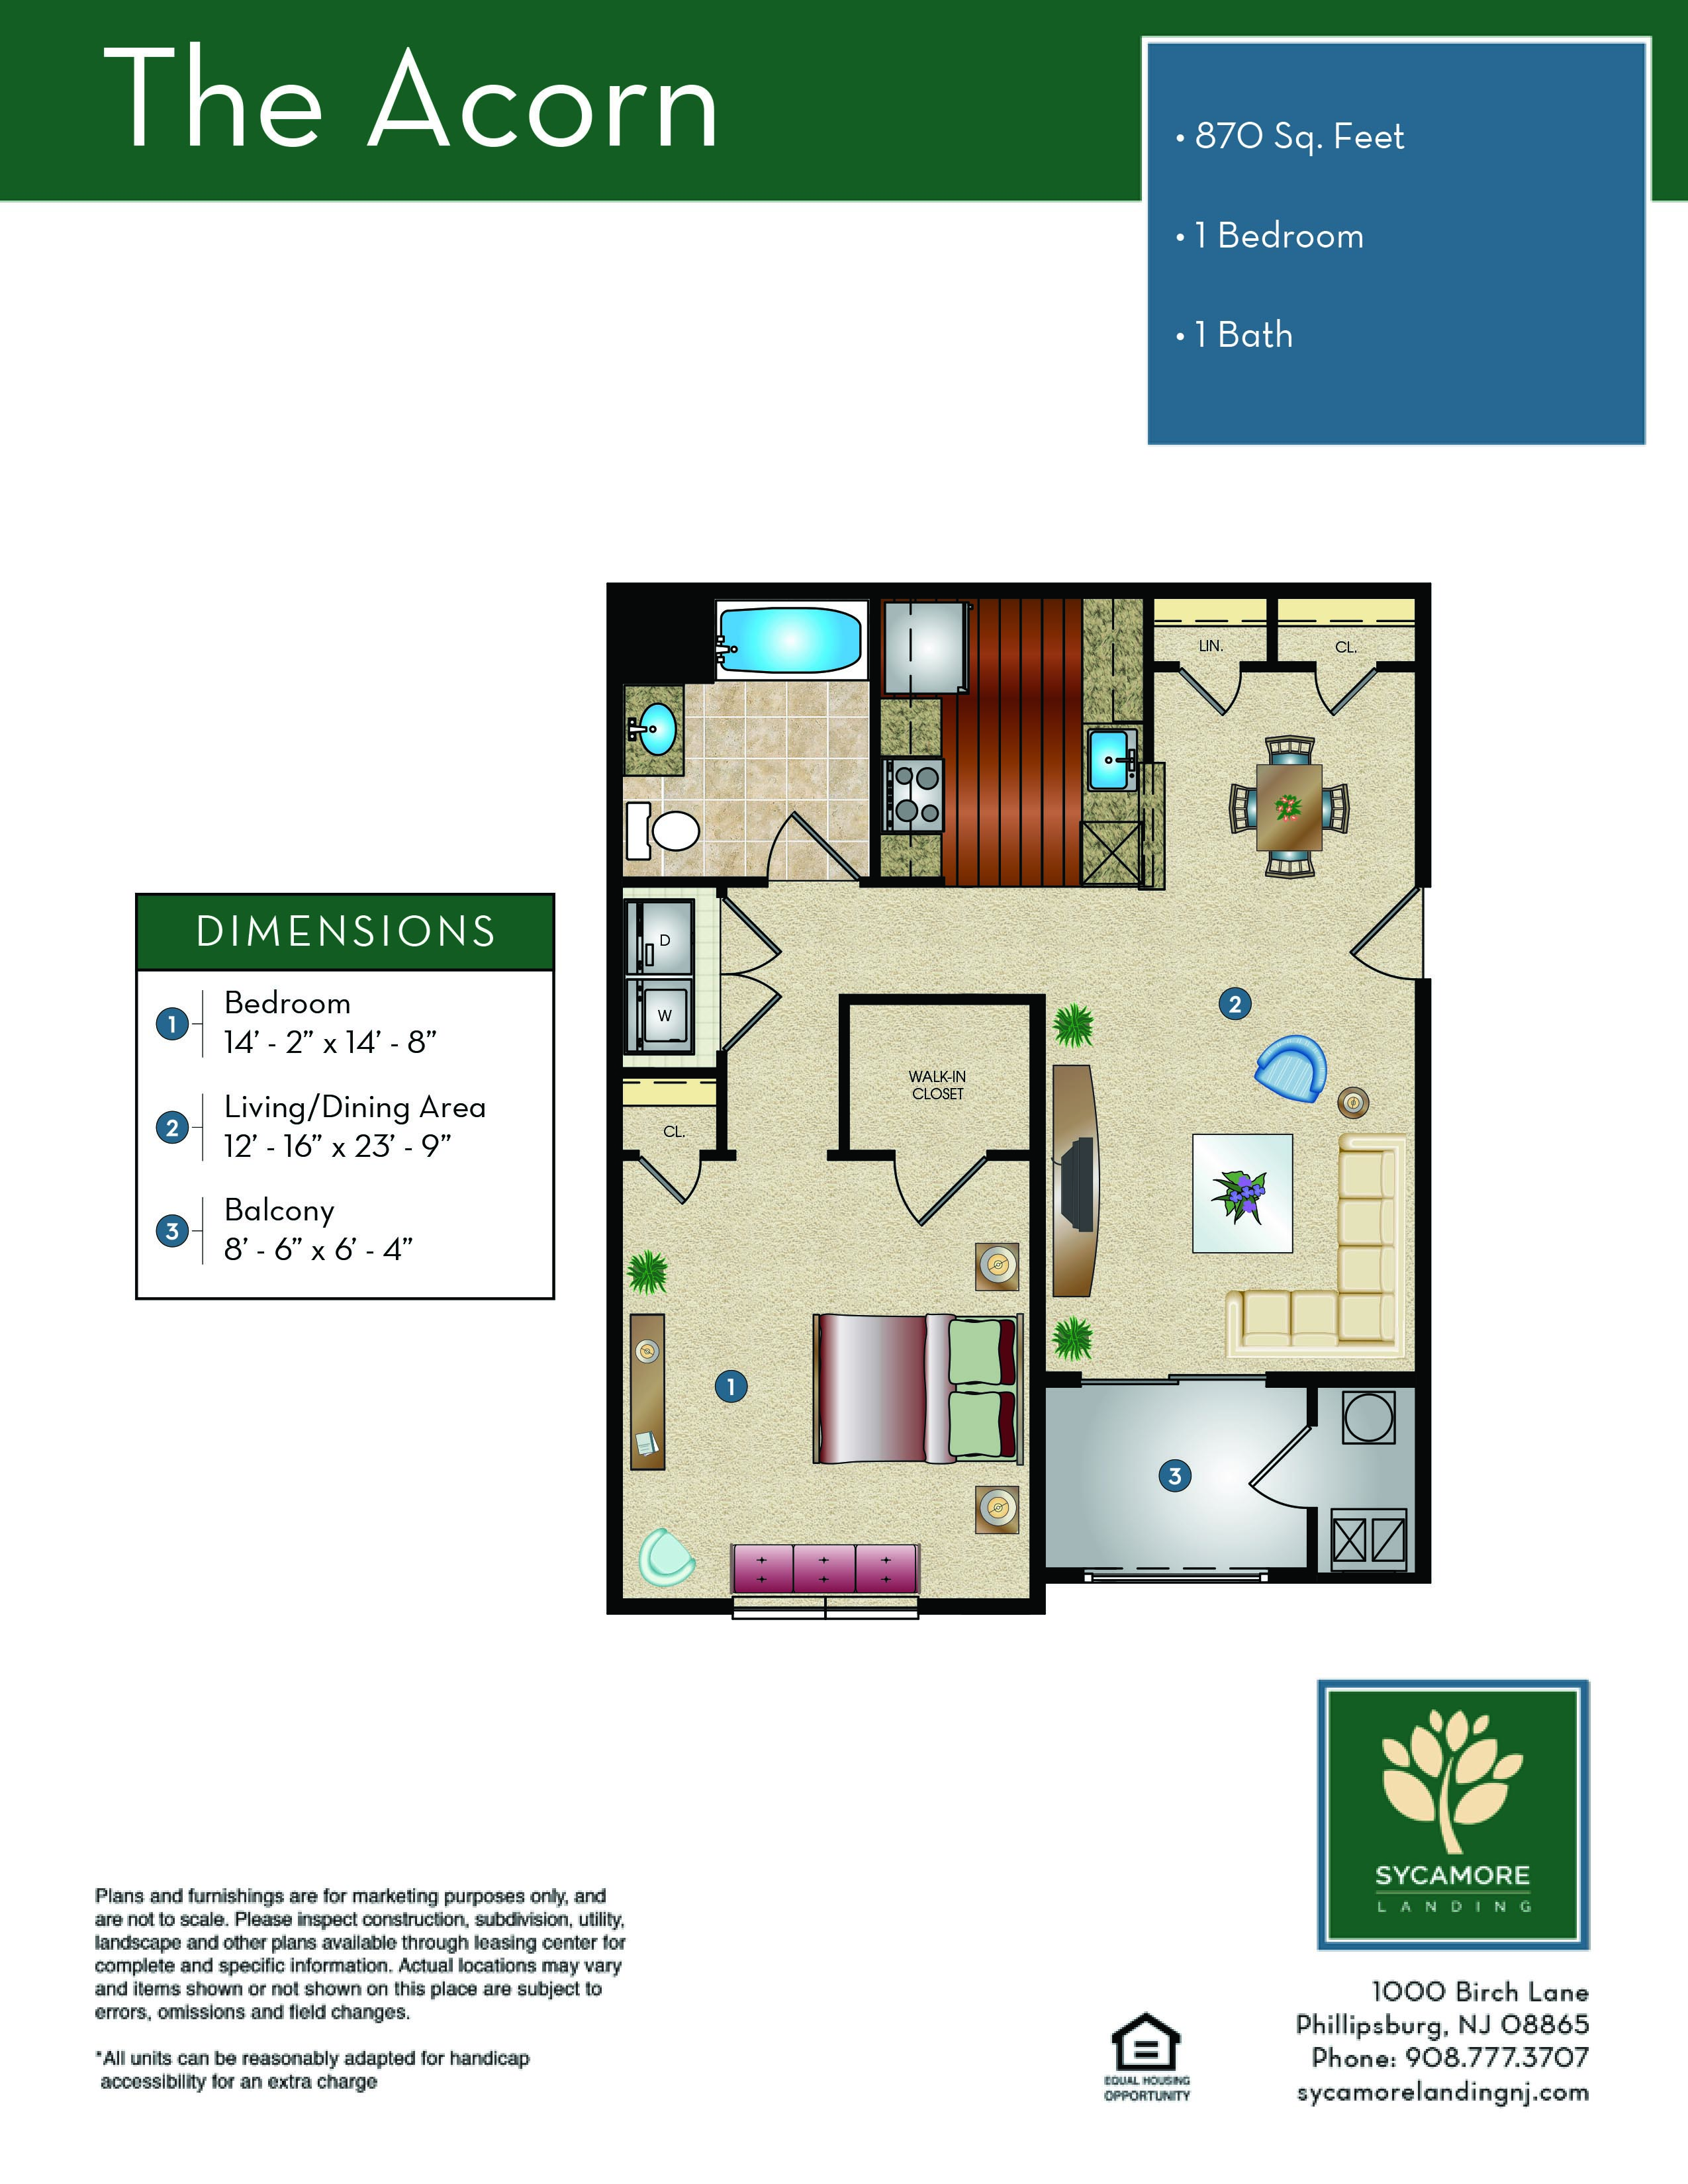 Sycamore Landing Floor Plan - The Acorn